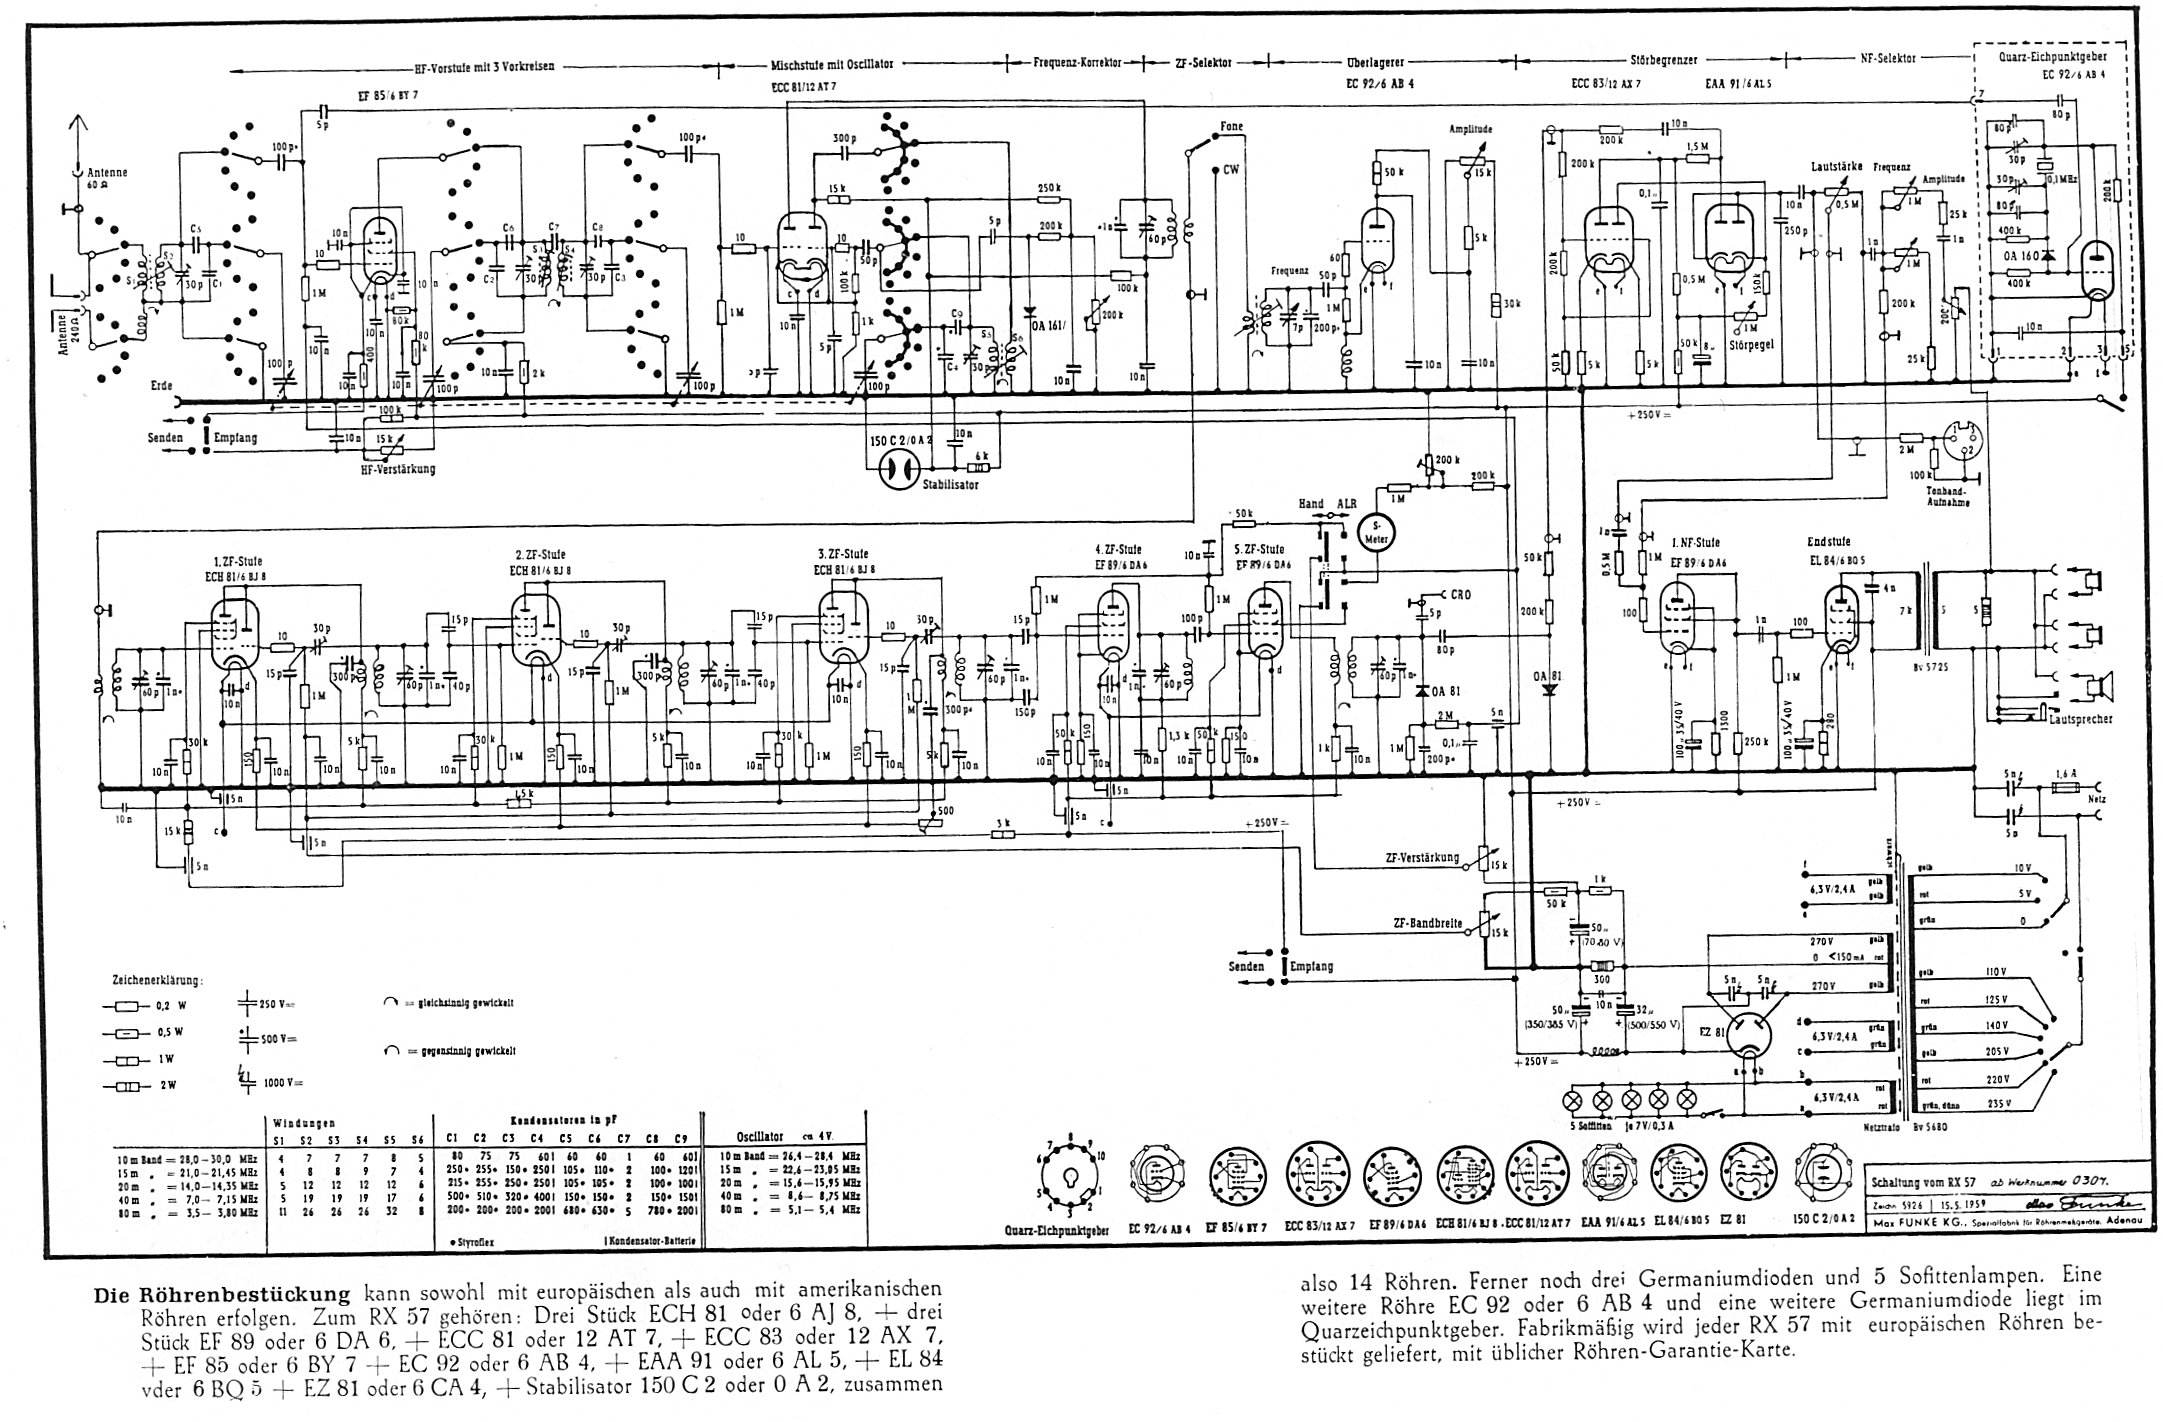 rotork wiring diagram 200 pioneer radio rigpix database schematics manuals 39n 39 stuff